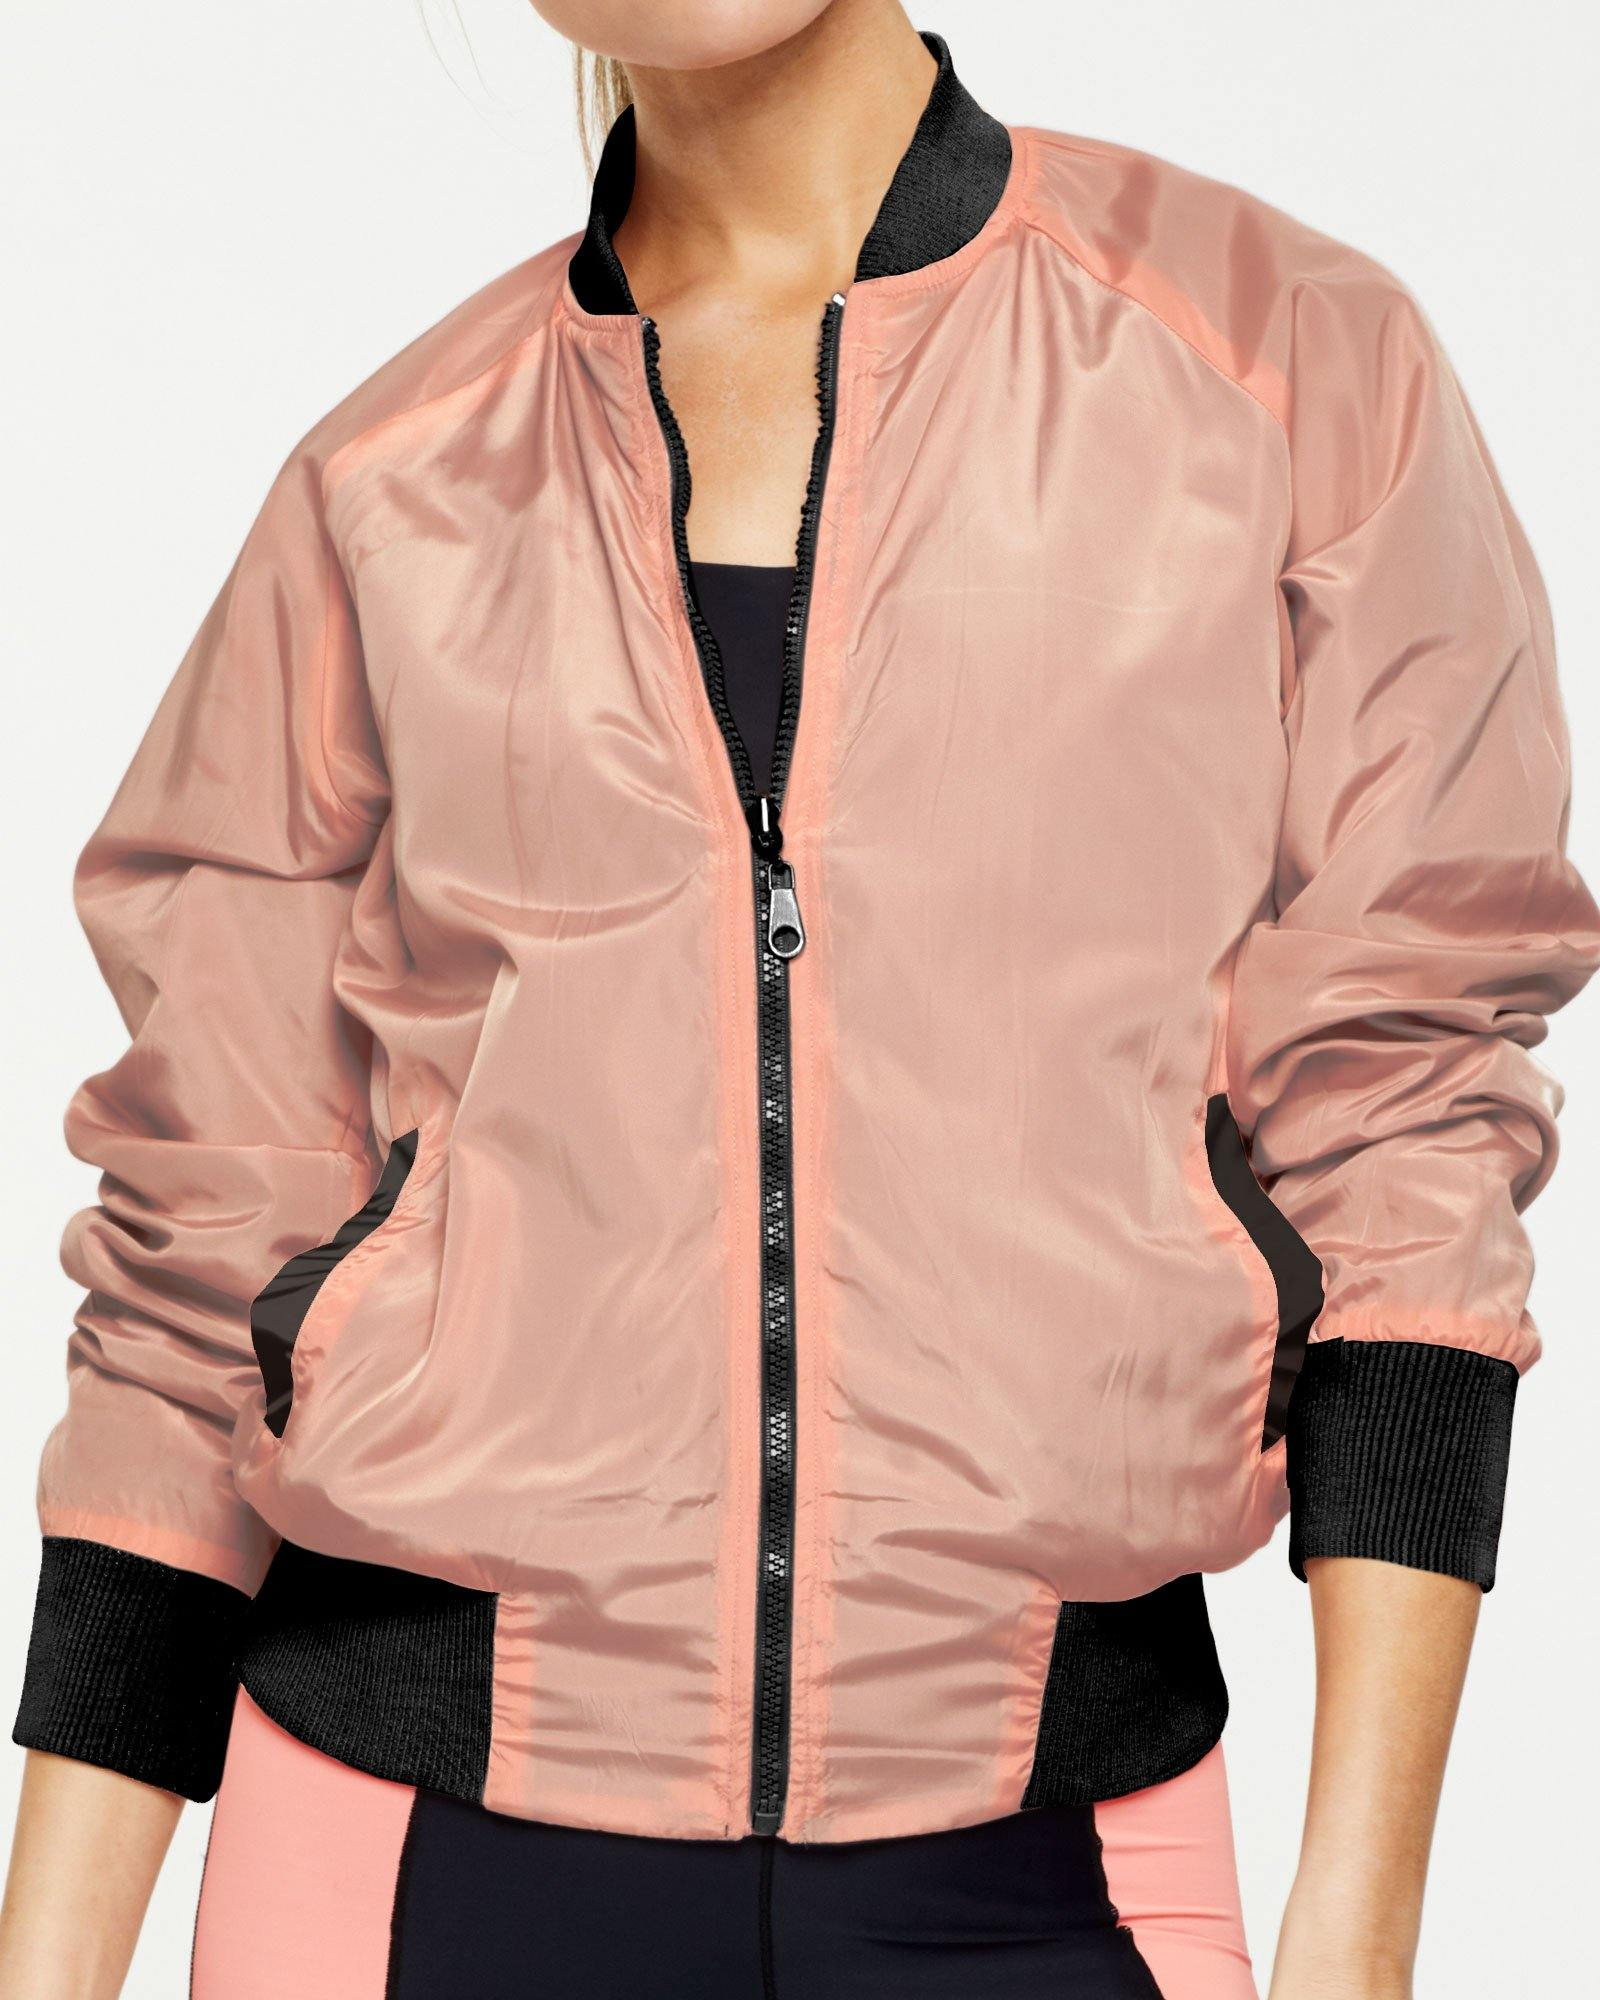 warrior PIKE REVERSIBLE JACKET, BLACK & PEACH, WORN OVER TRANSVERSE 7/8 BODY SUIT, PEACH SIDE, FRONT VIEW